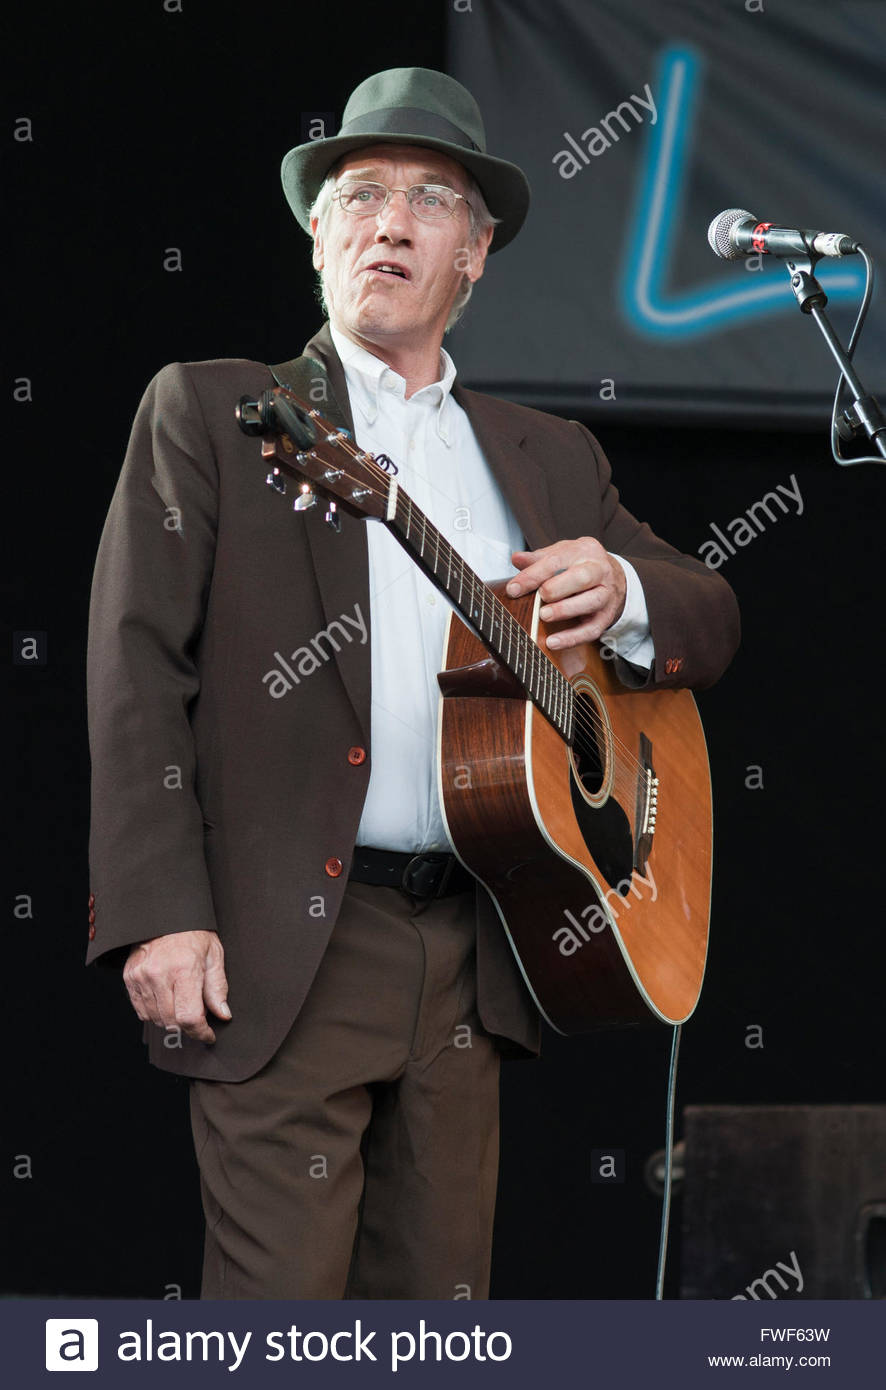 Peter Dunn of Americana skiffle band, The Buffalo Gals performing at the Larmer Tree festival, UK, 2011. - Stock Image